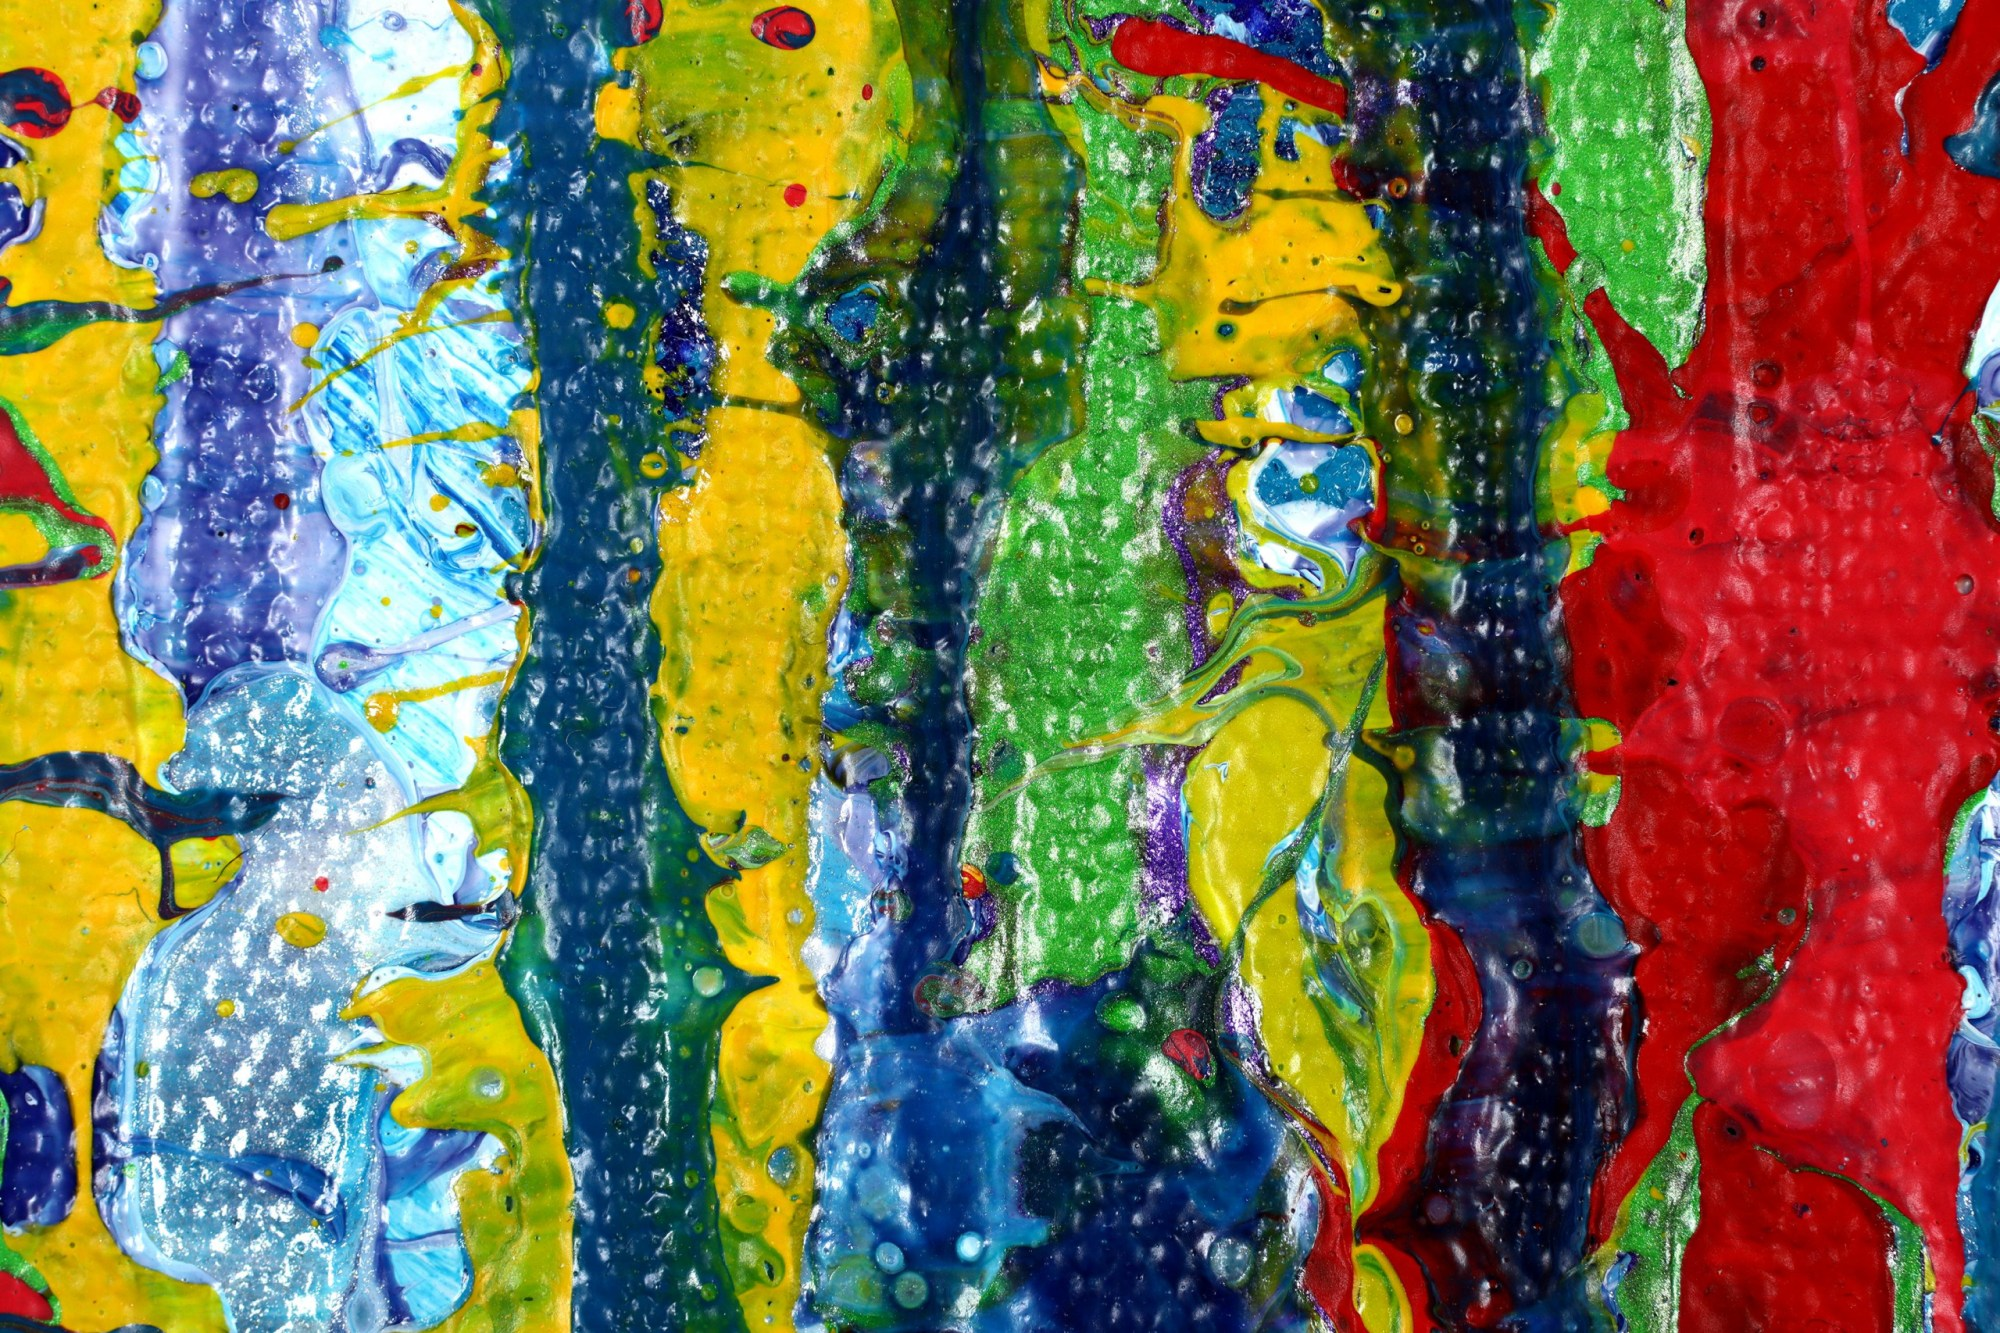 DETAIL / Faces of nature 26 (2021) by Nestor Toro